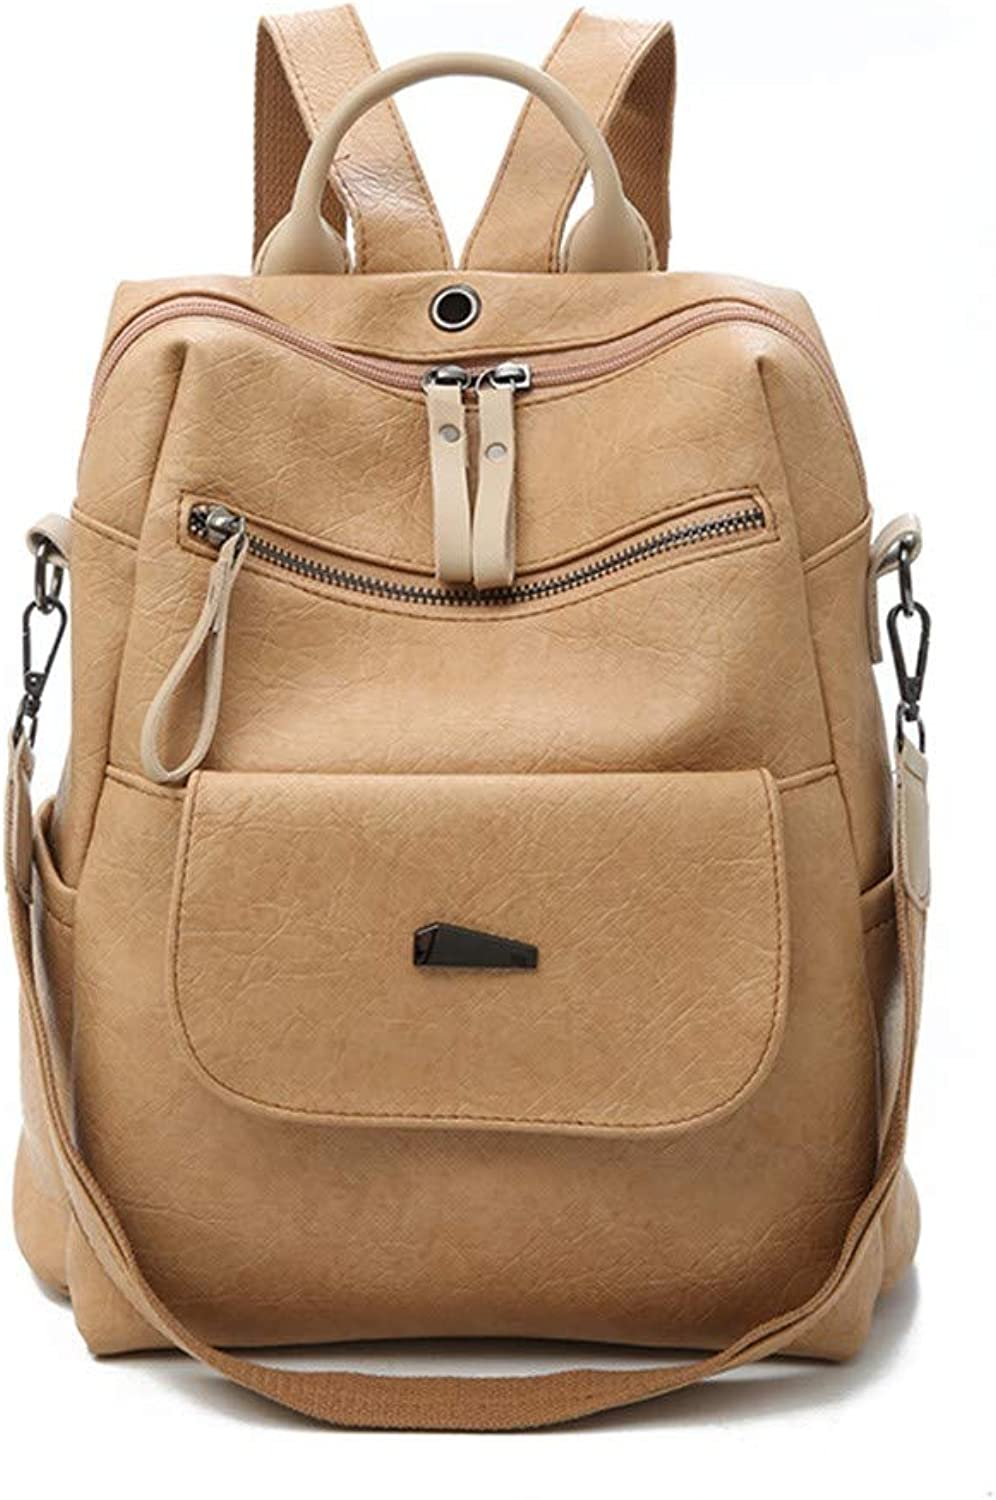 H-M-STUDIO Bags Autumn and Winter Large Capacity Travel and Leisure Backpack Khaki 28  30  12Cm